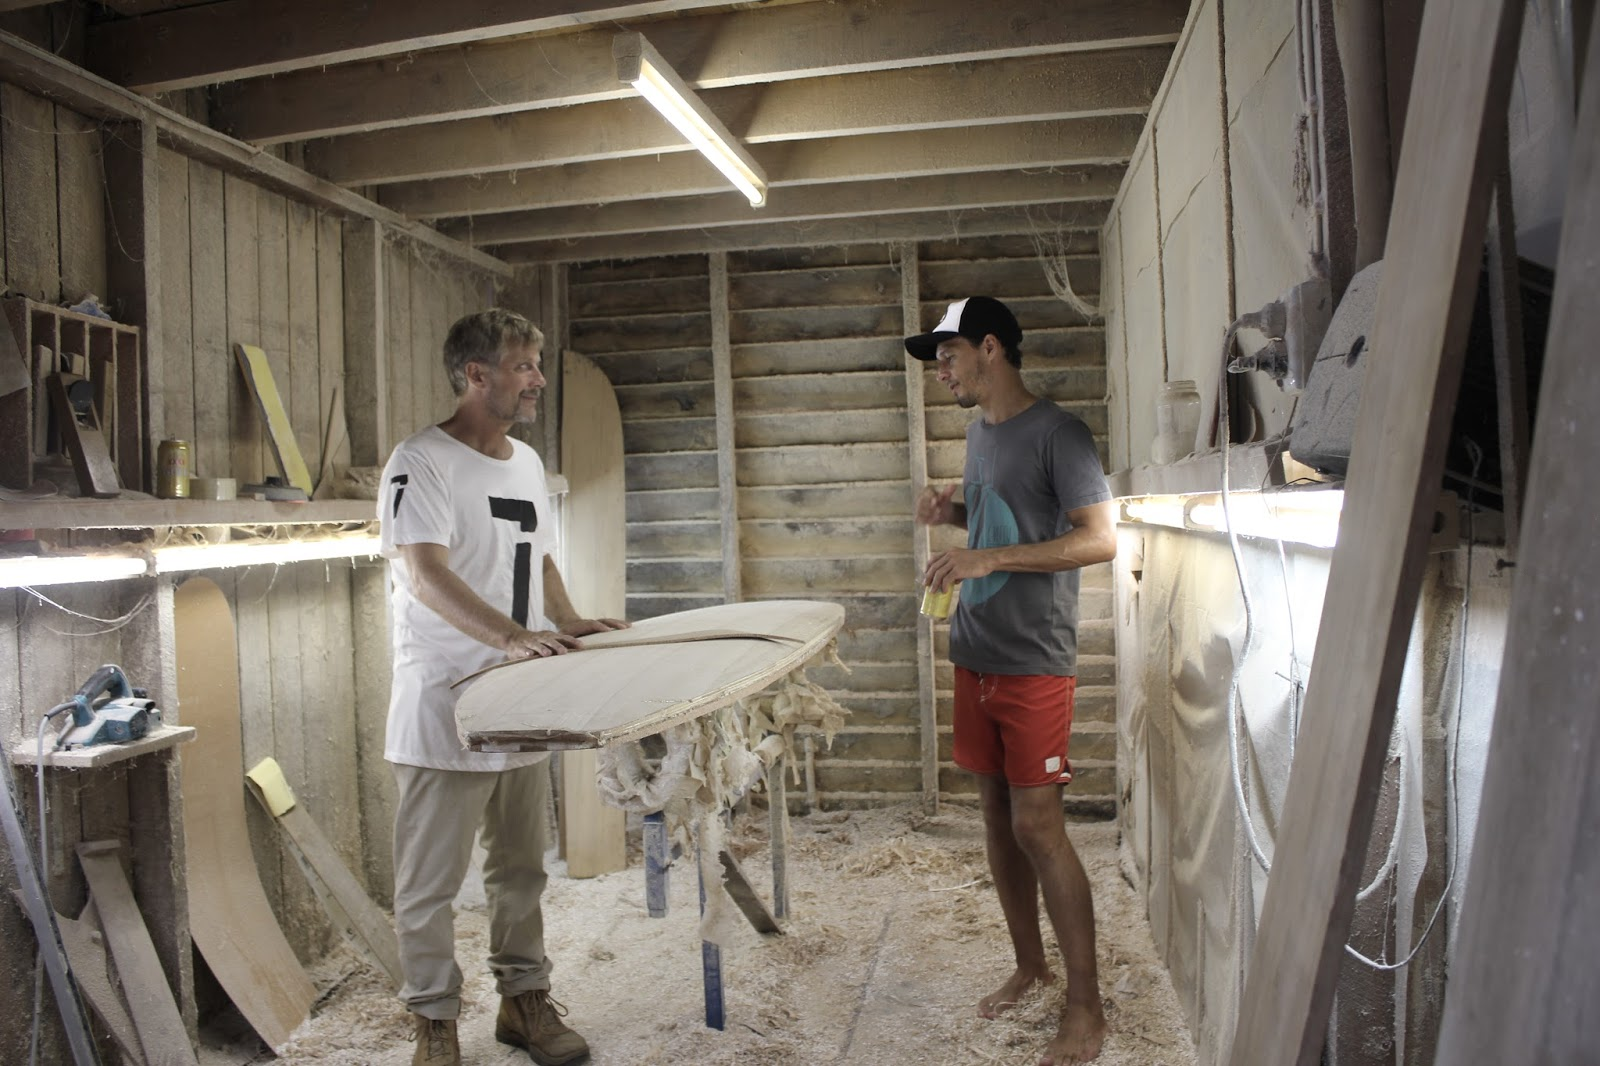 16-03-2016-australia-siebert-surfboards-08